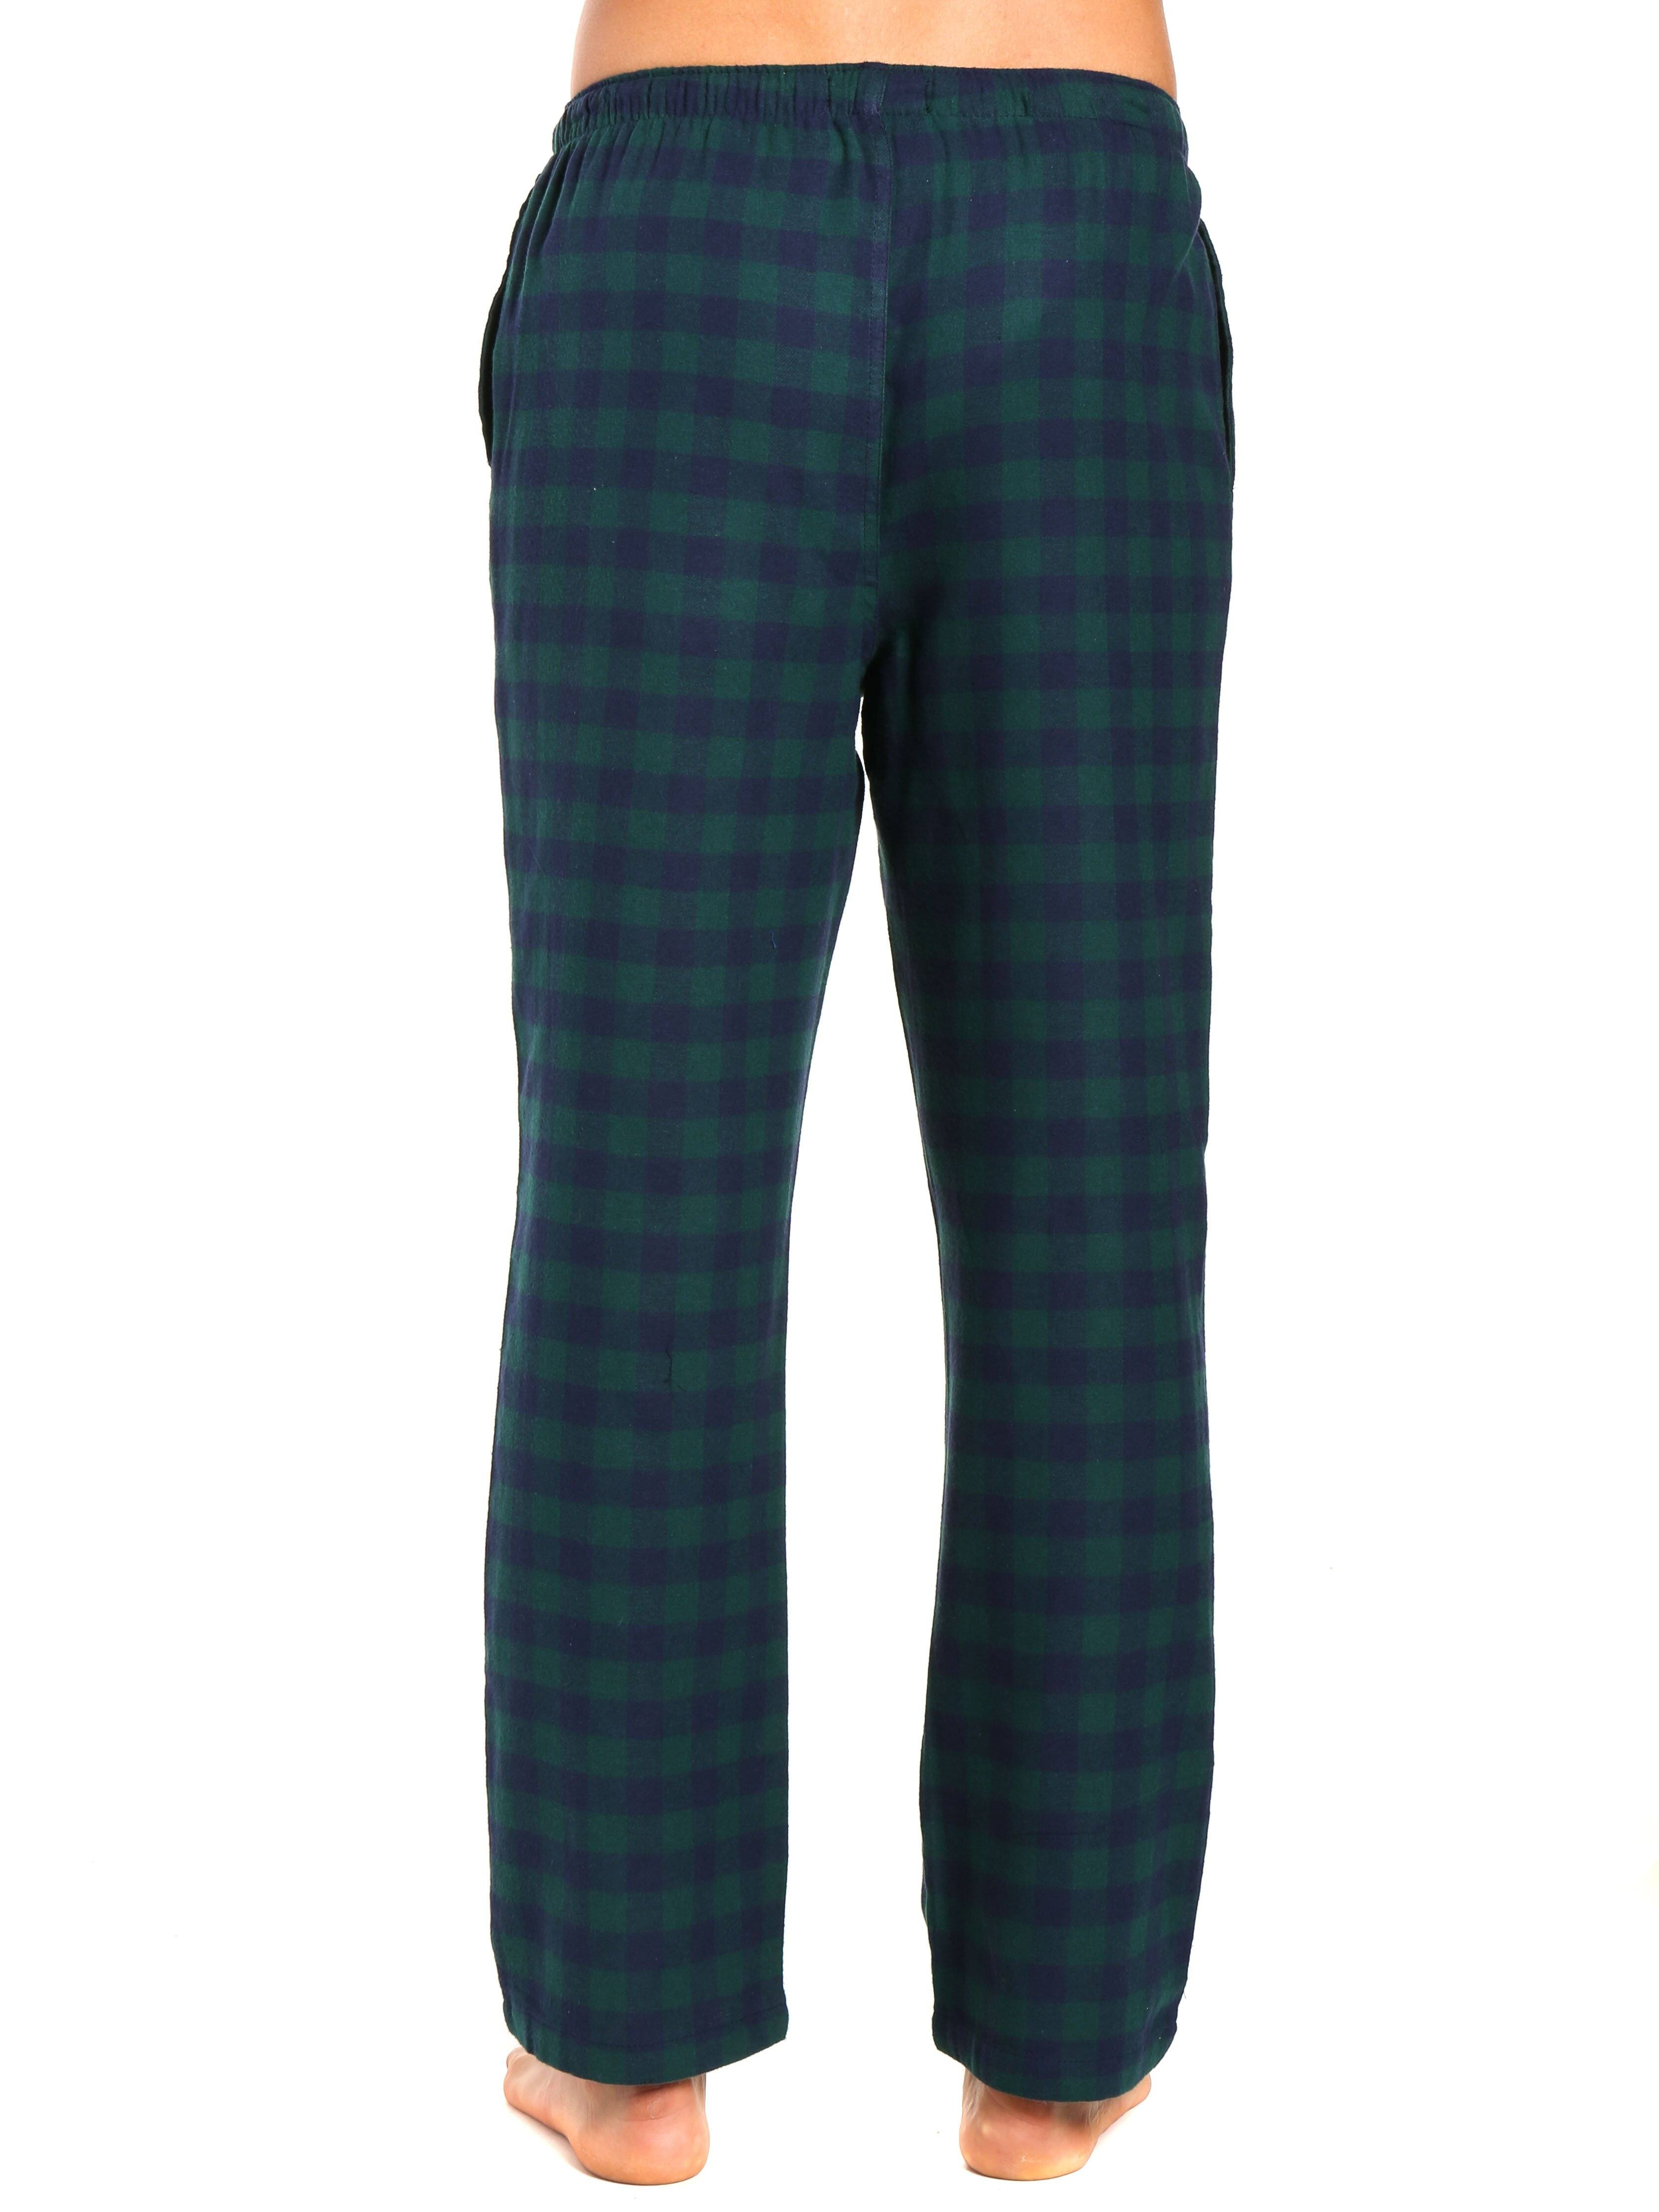 Gingham Navy-Green